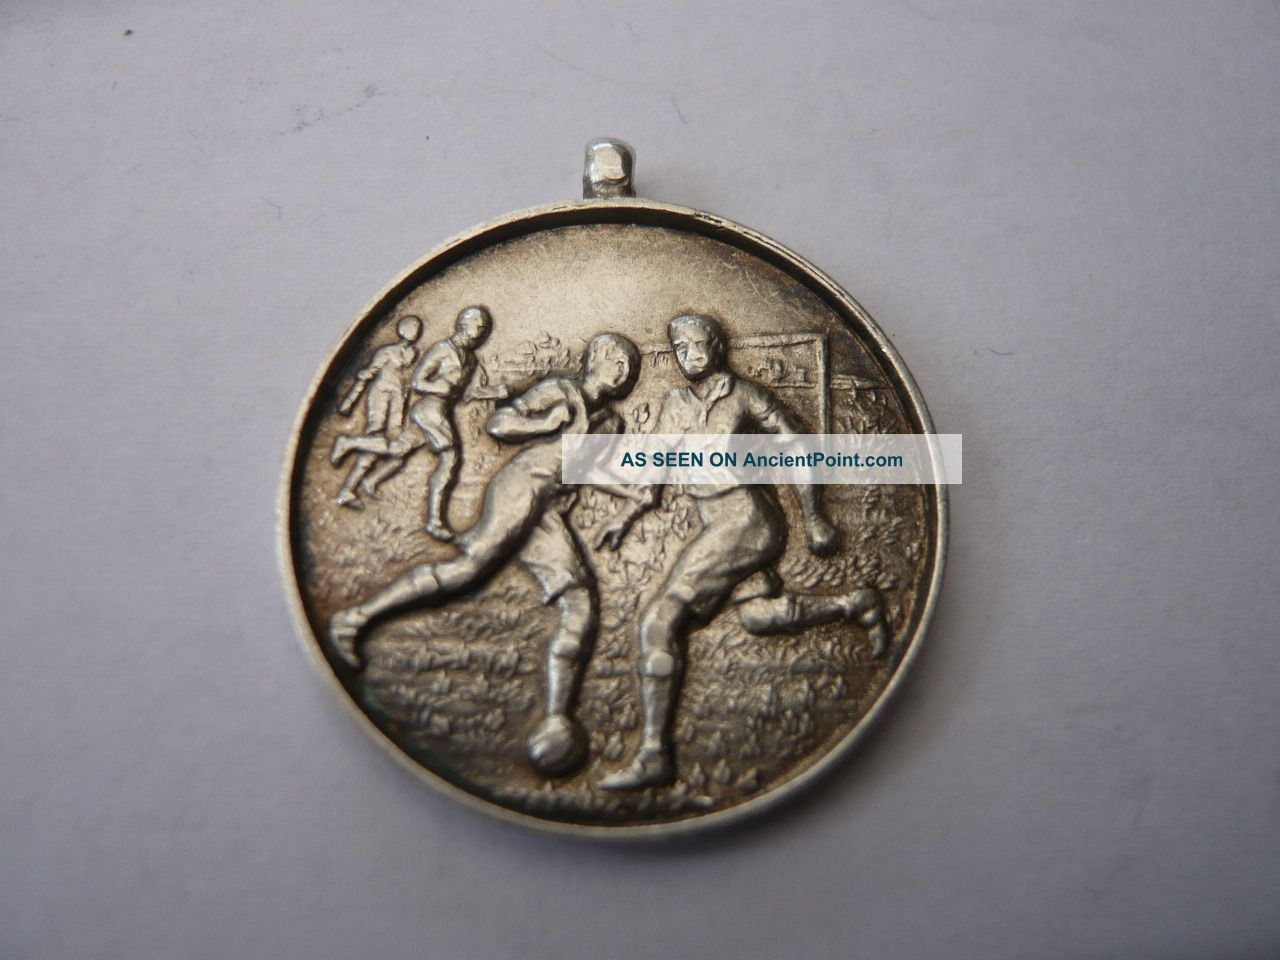 Good Vintage Sterling Silver Pocket Watch Chain Fob Medal Football 1930,  S Bucks Pocket Watches/ Chains/ Fobs photo